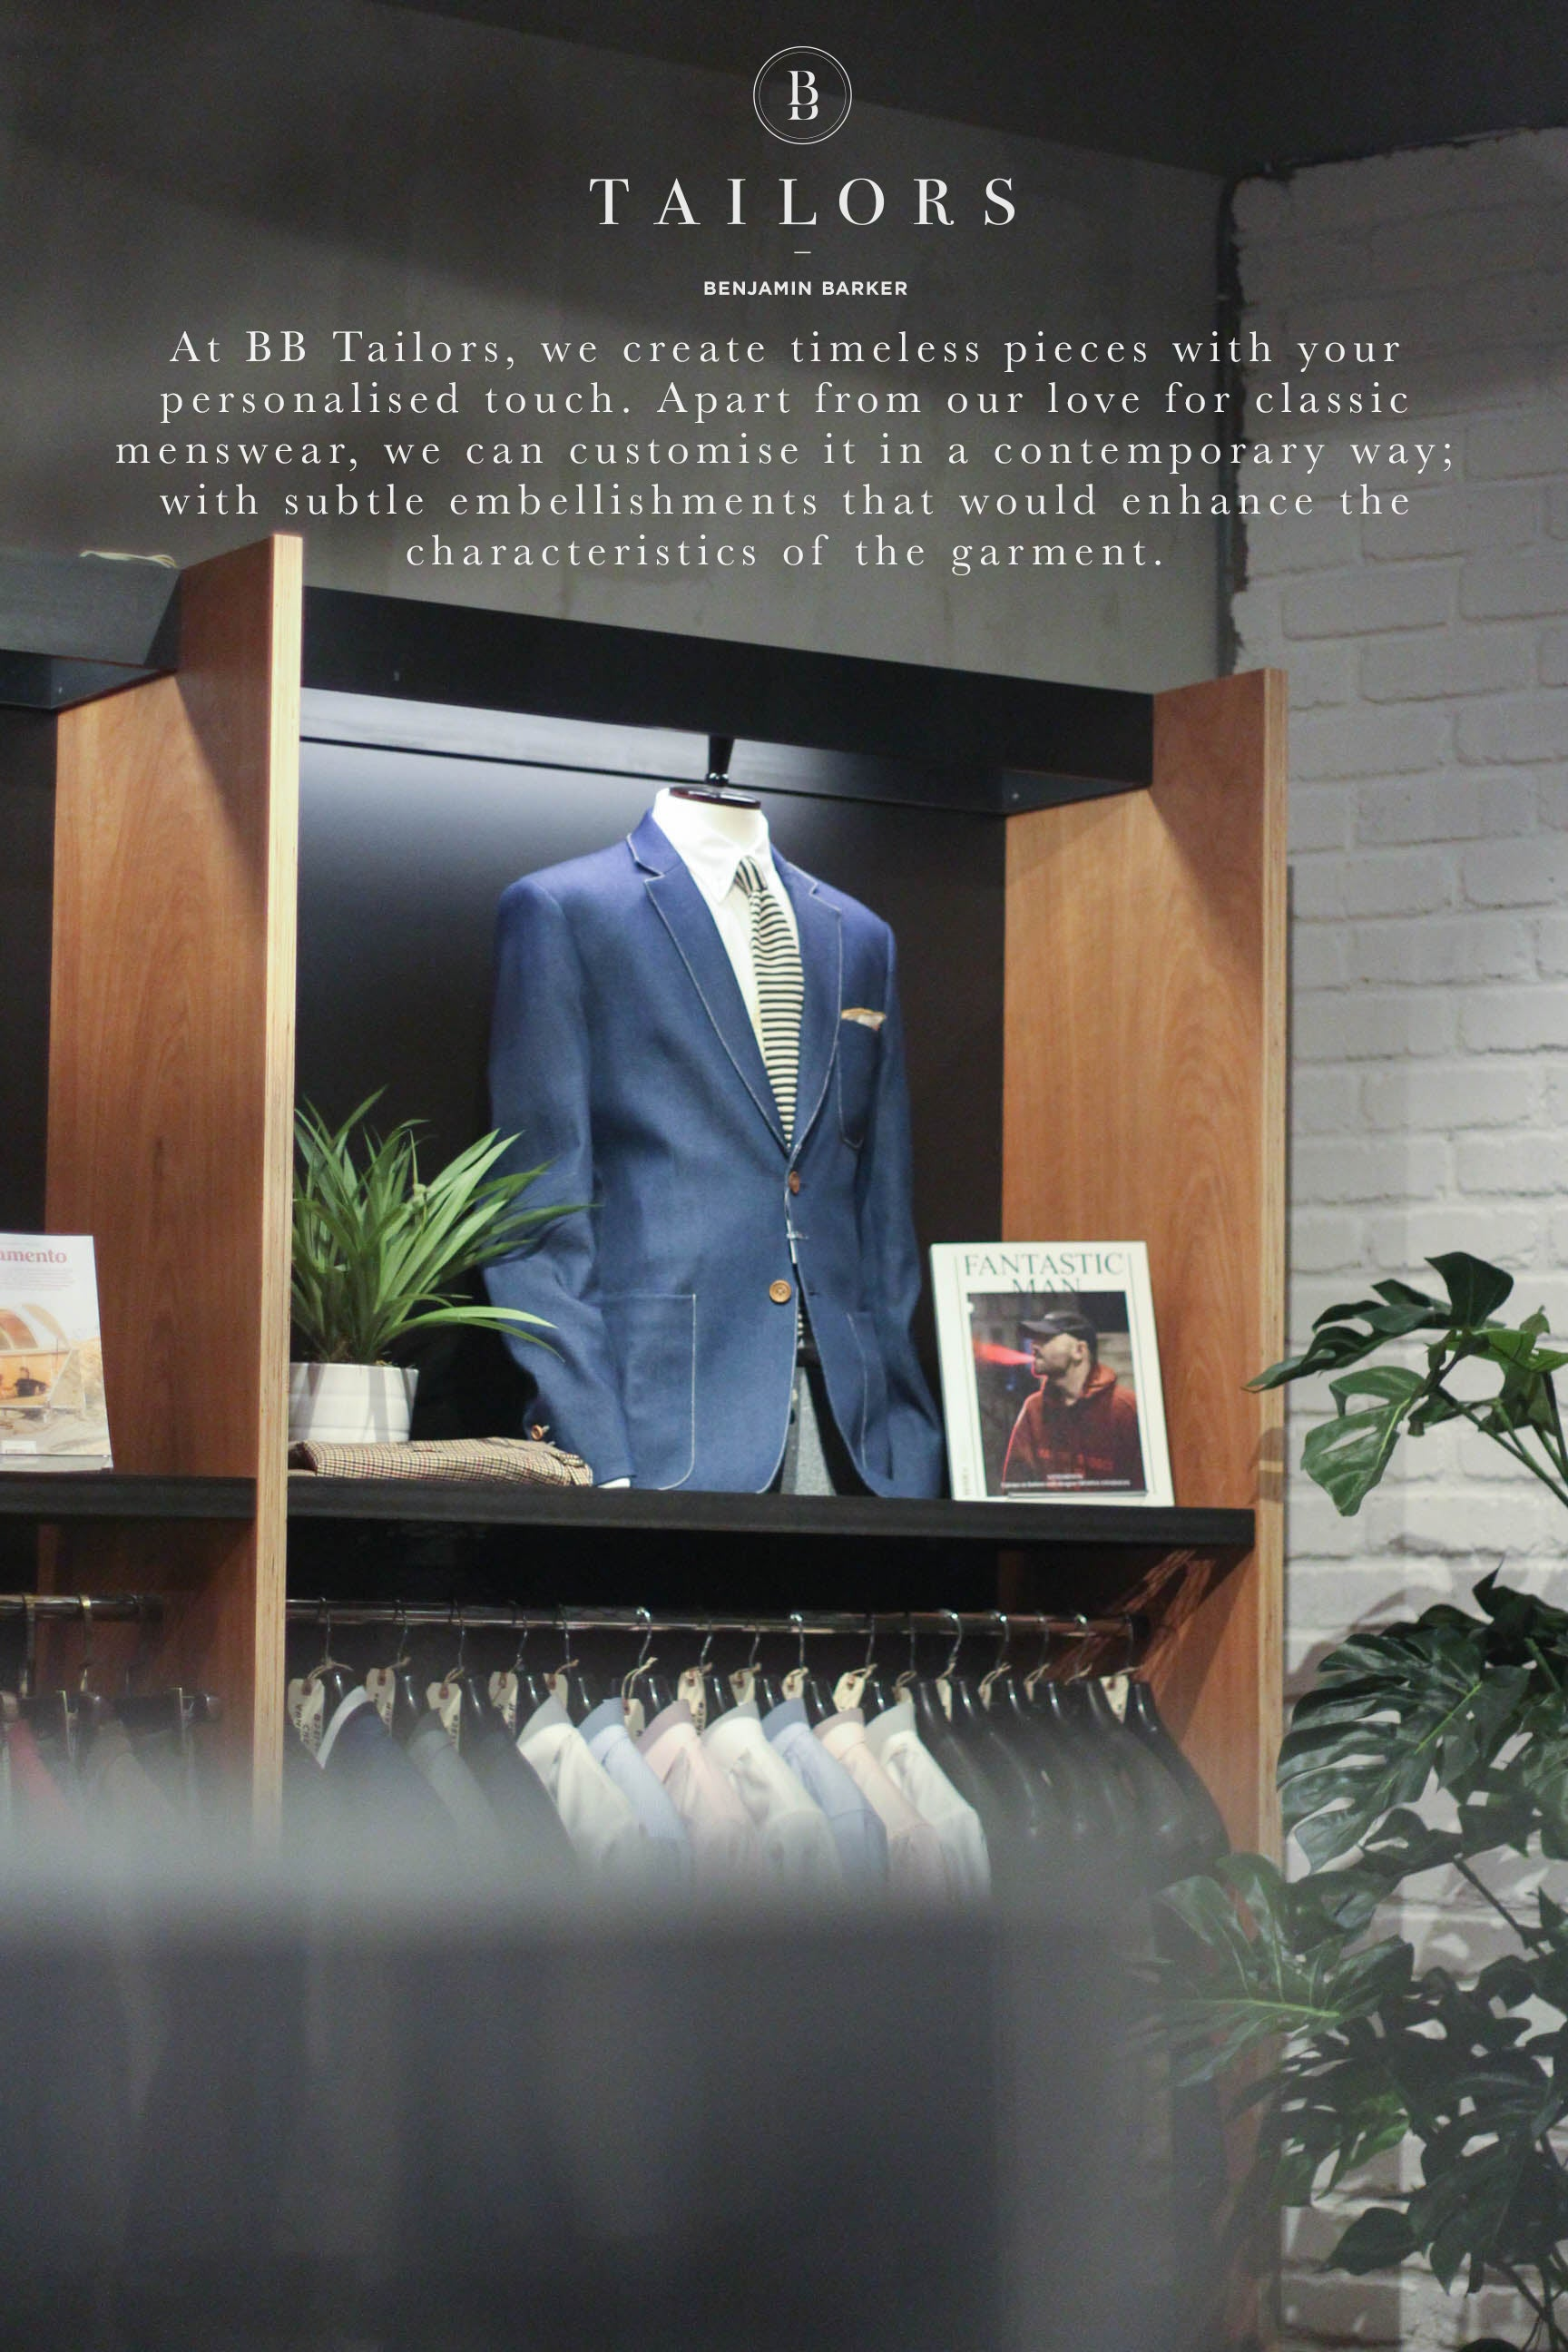 1d9ba249 Book An Appointment custom@benjaminbarker.com.au +65 83990125. BB Tailors  is located at B Store, The Cathay, Singapore, #01-22/23